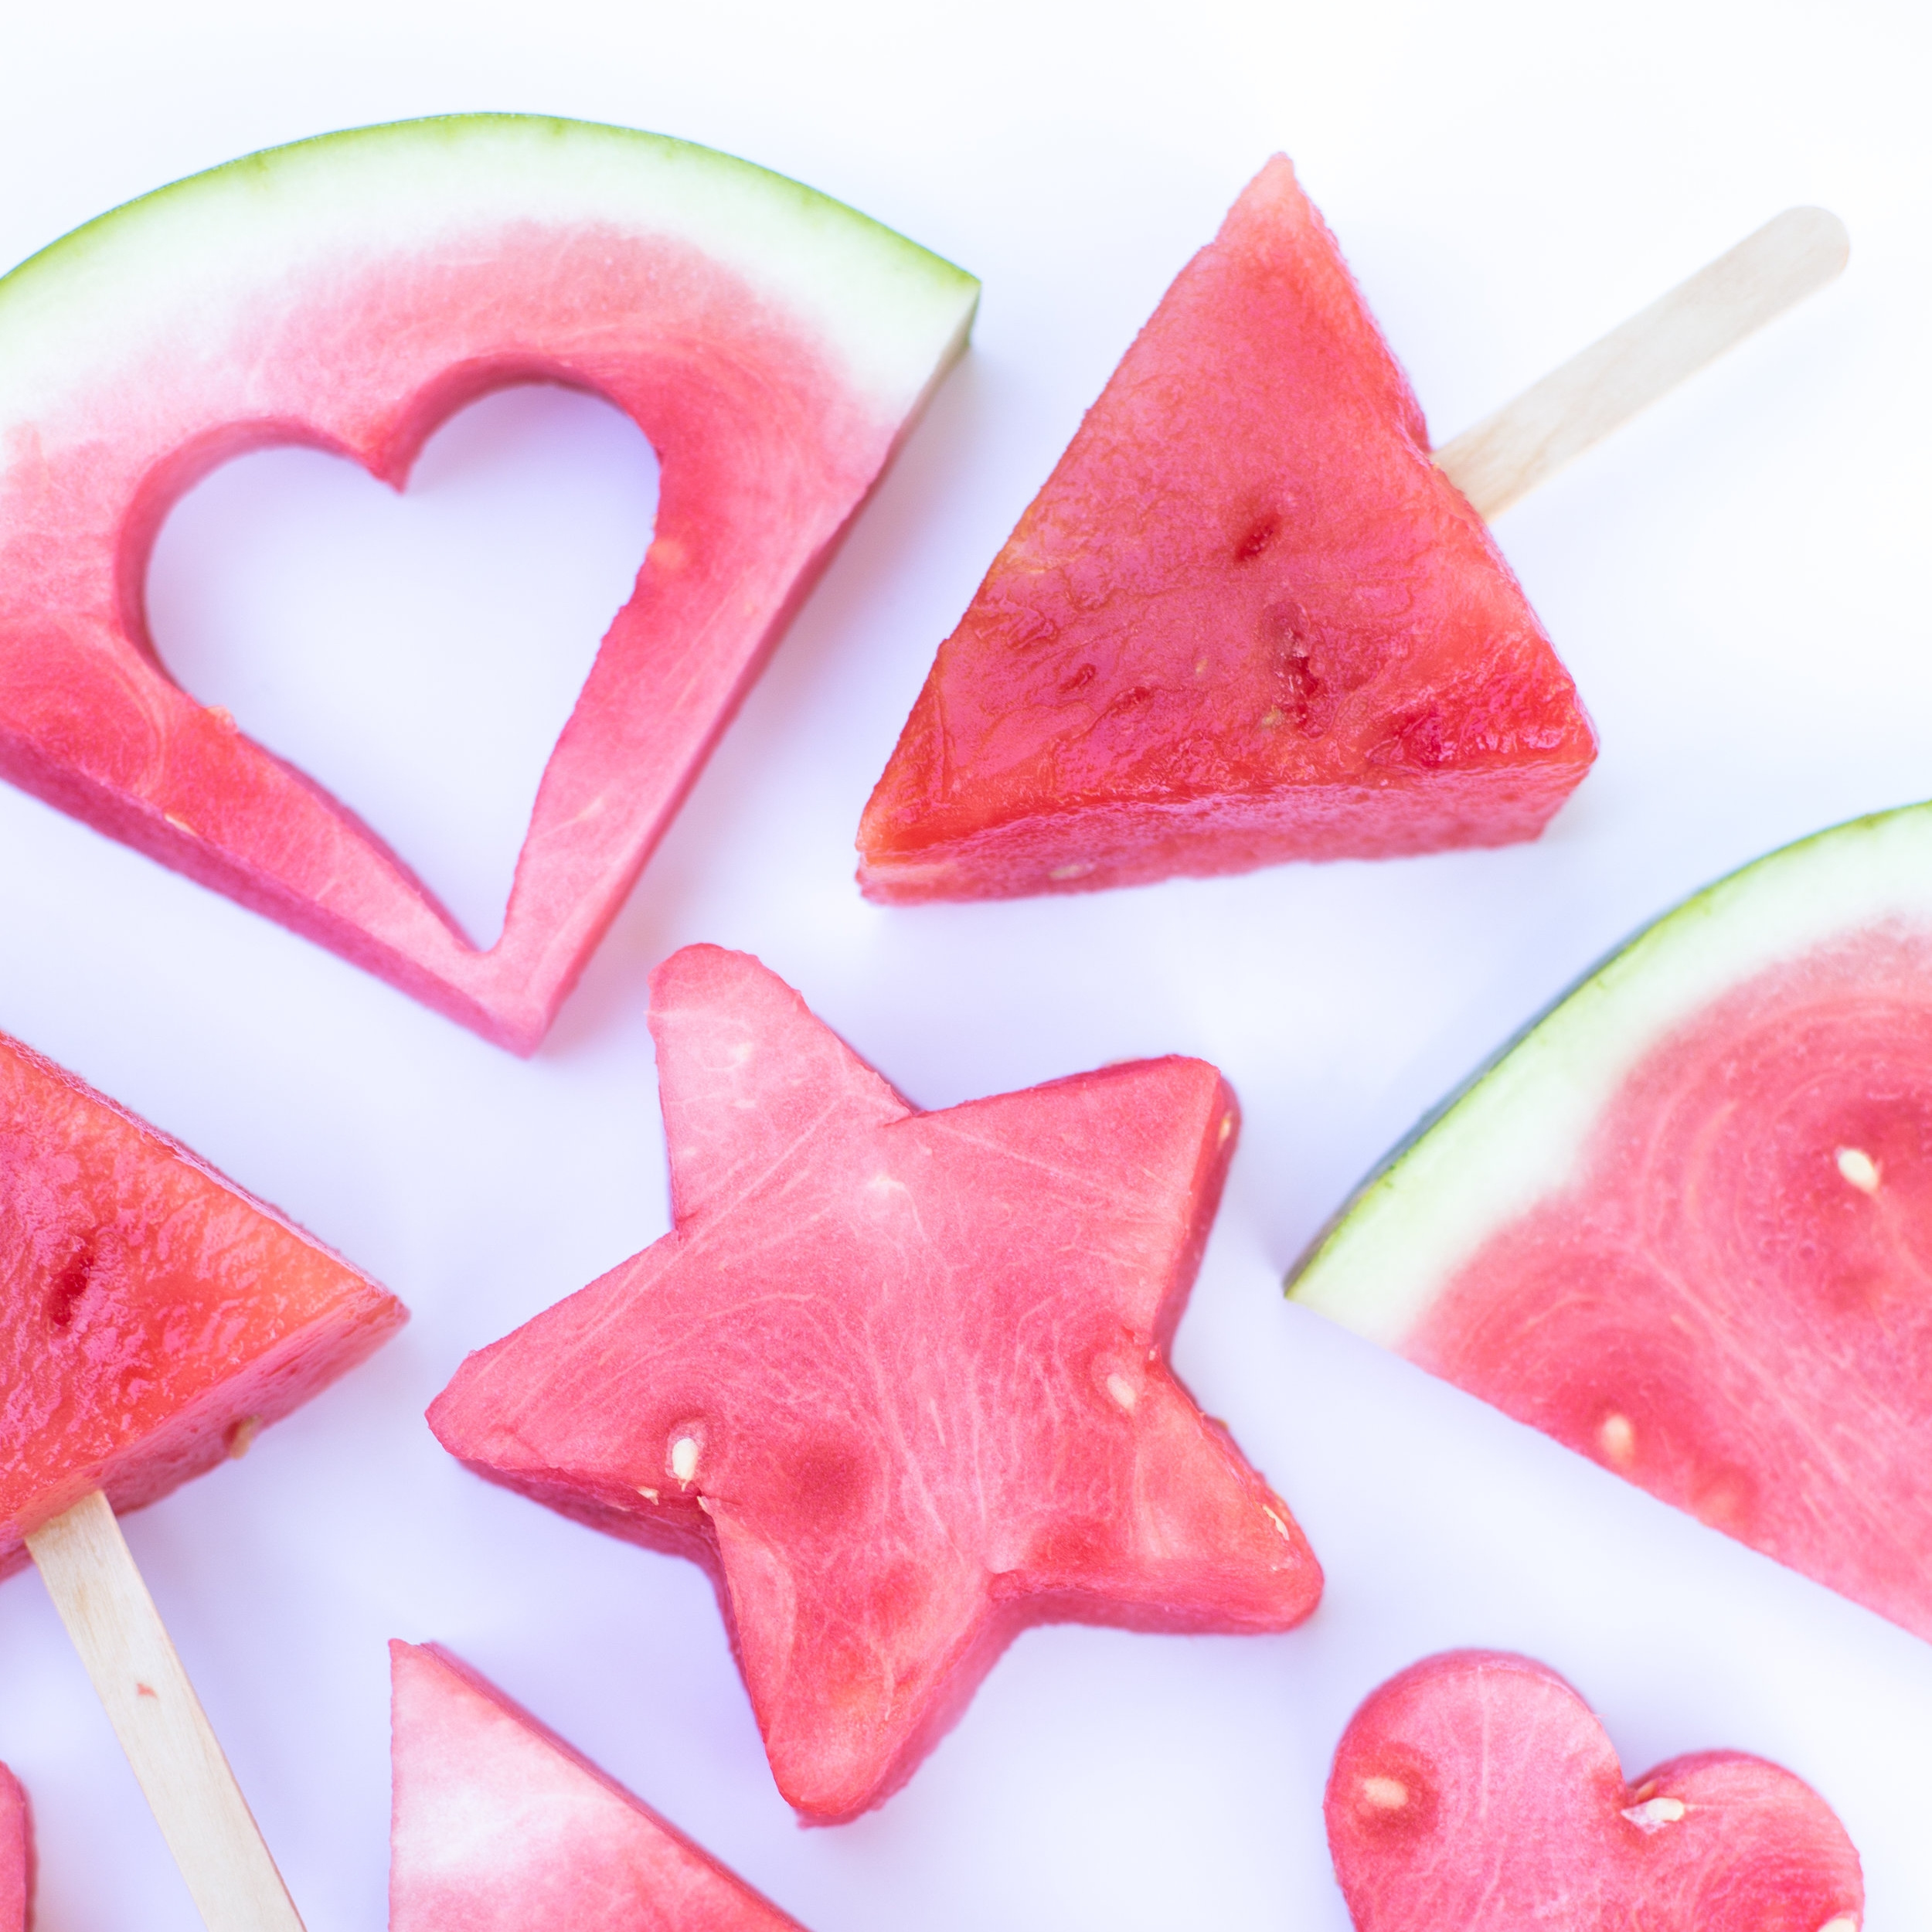 CKT Watermelon Pops